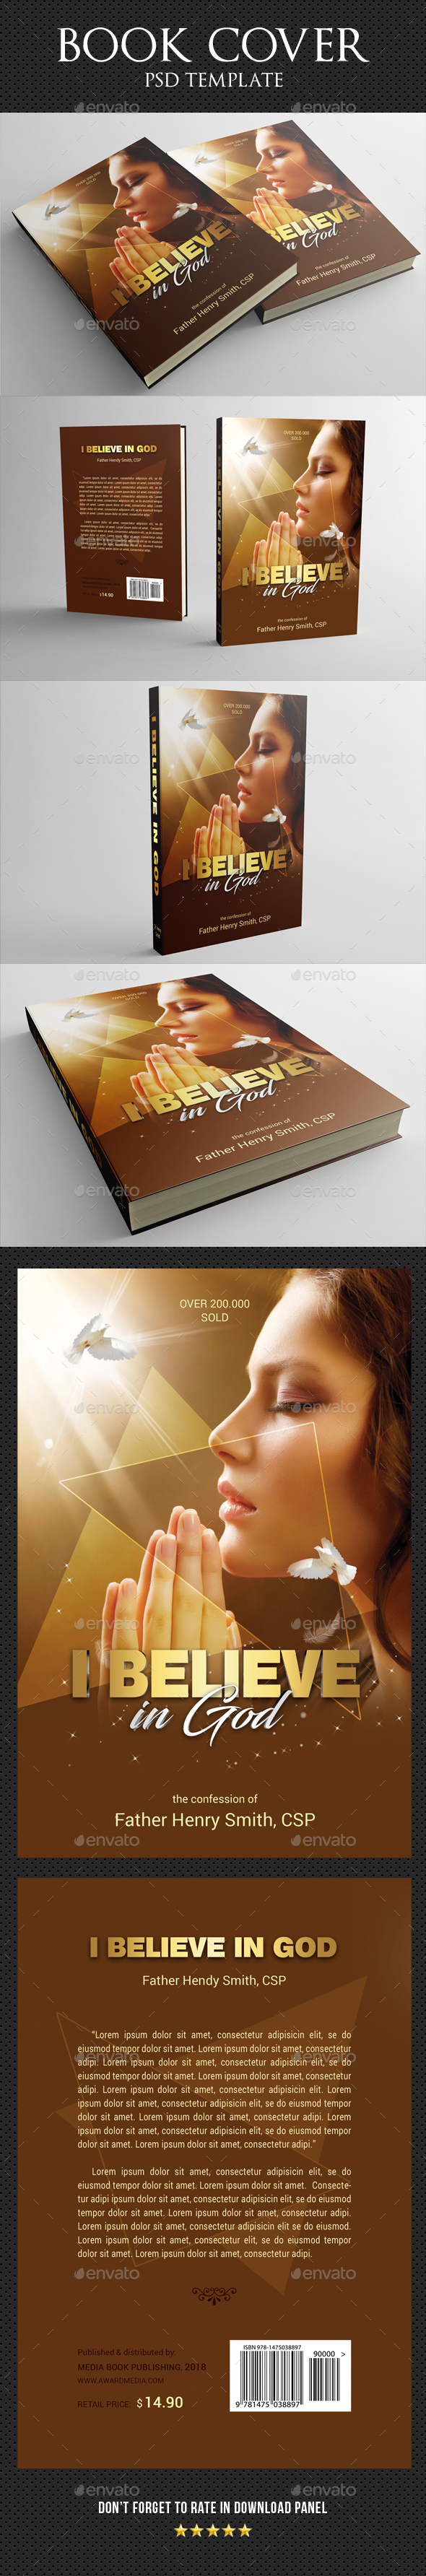 Believe In God Book Cover Template - Miscellaneous Print Templates